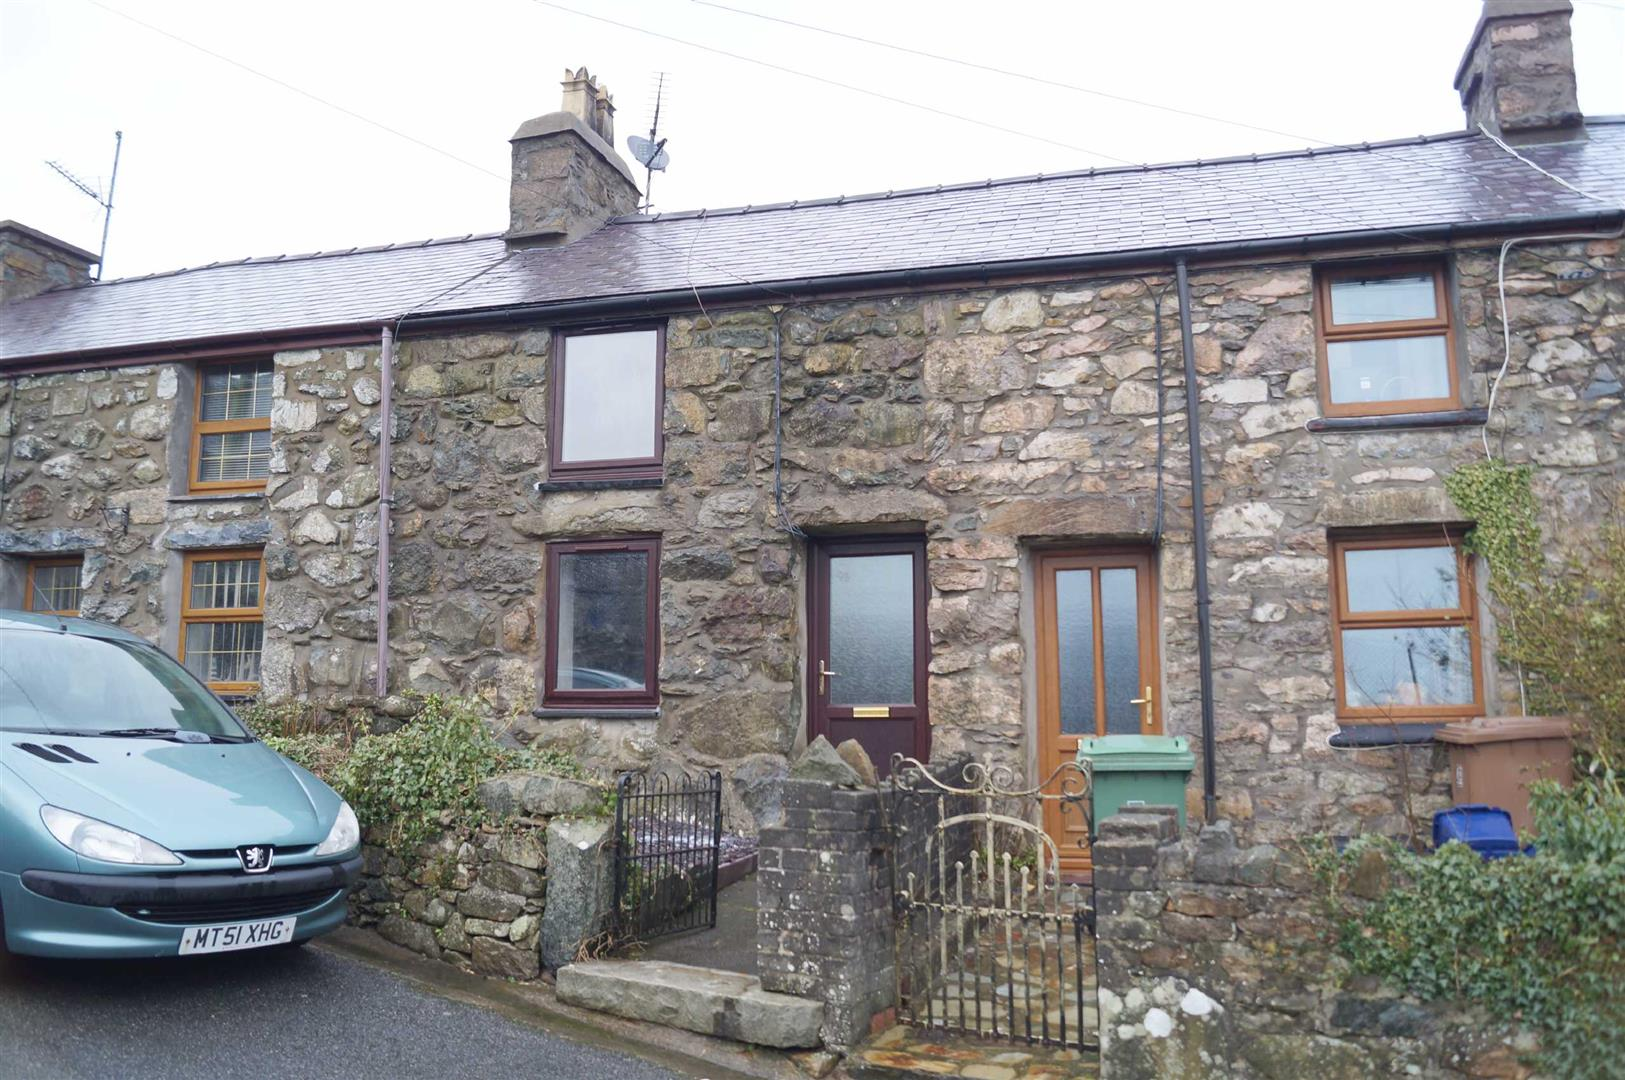 Tan Y Fynwent, Llanaelhaearn - £85,000/Offers around